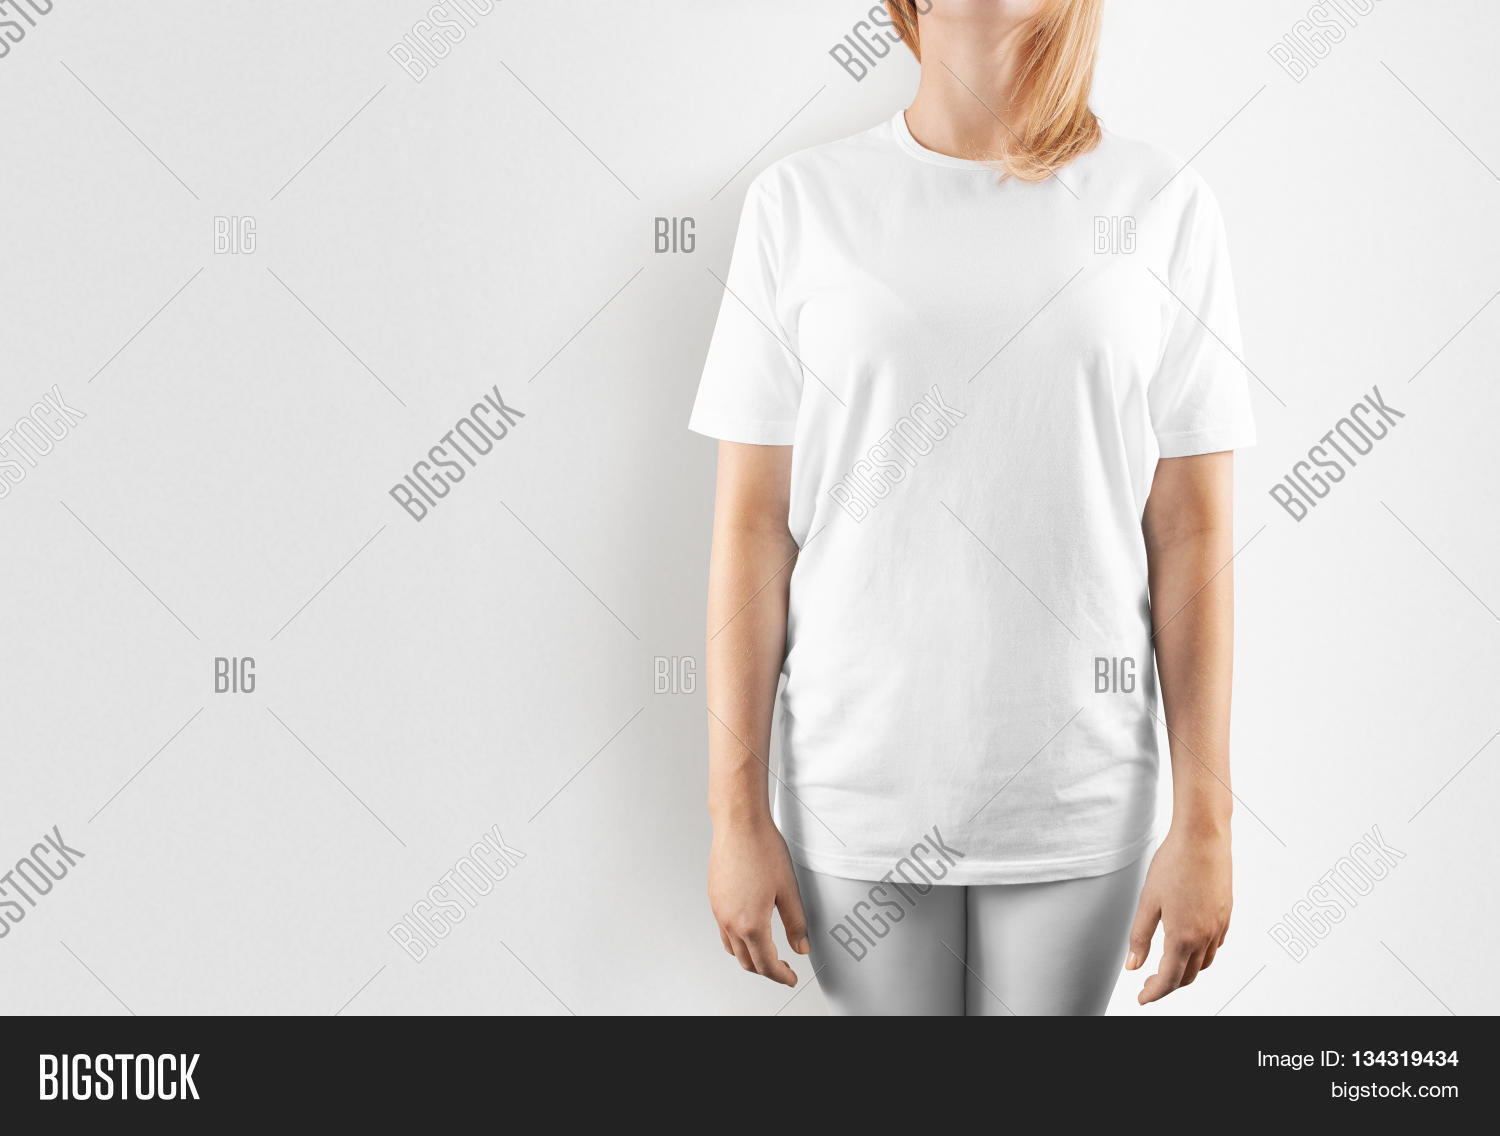 T shirt white mockup -  White T Shirt Design Mockup Isolated Women Tshirt Clear Template Download